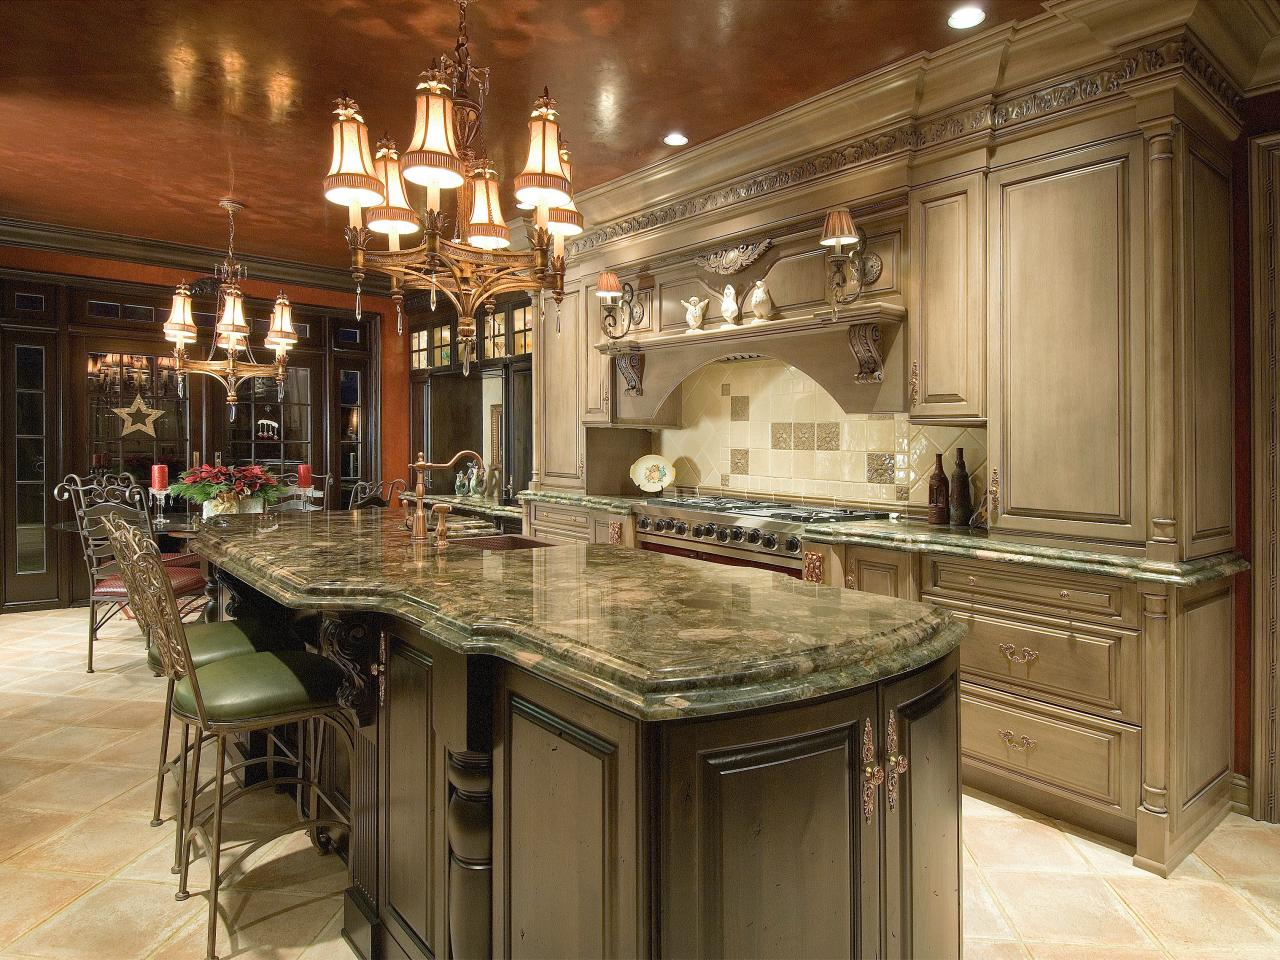 Guide to creating a traditional kitchen kitchen ideas for Modern classic kitchen design ideas